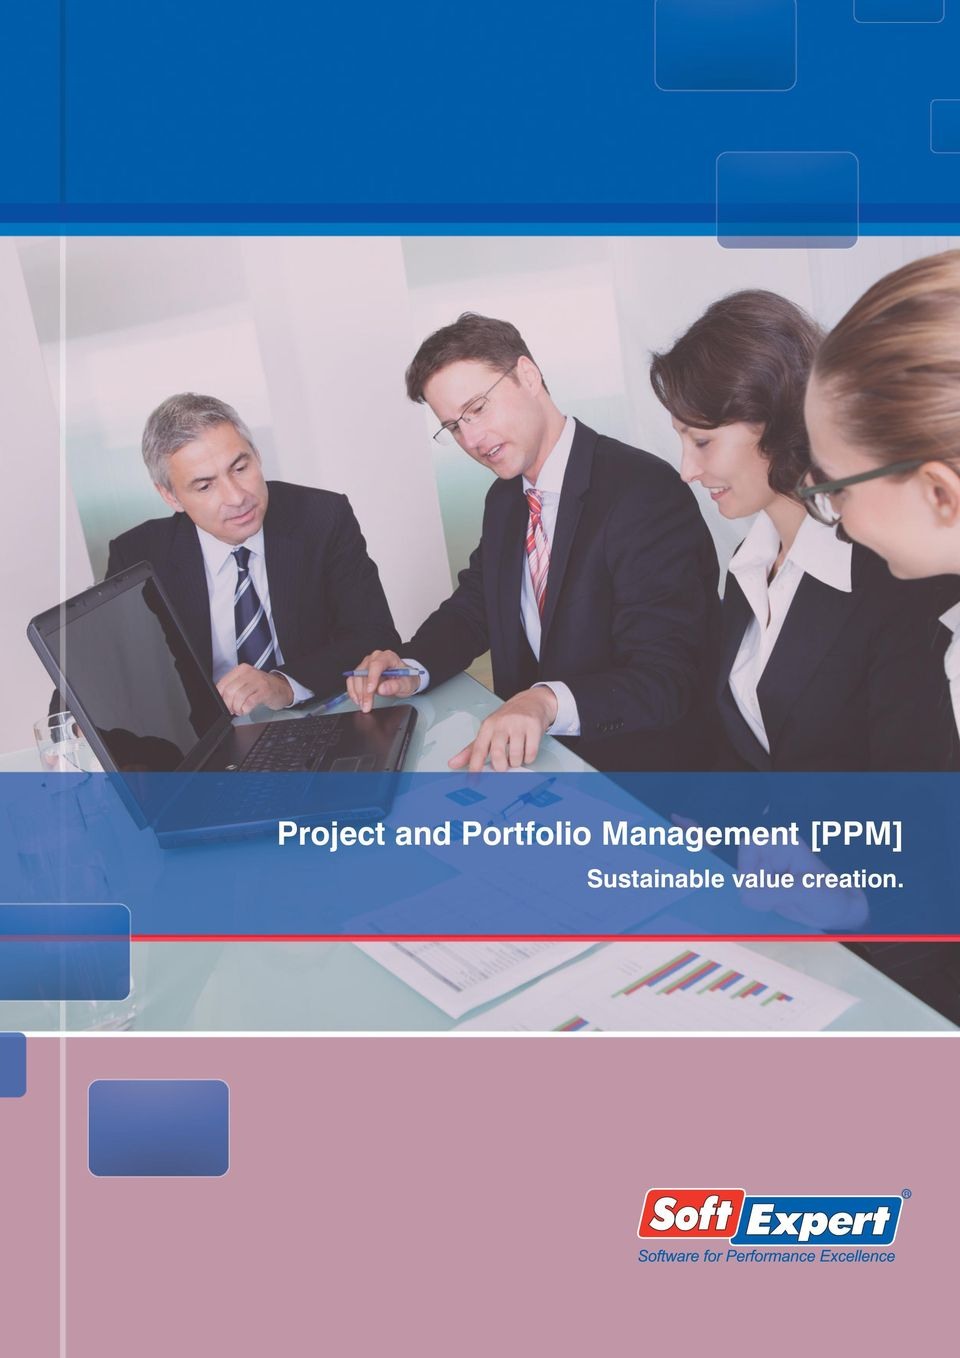 Management [PPM]